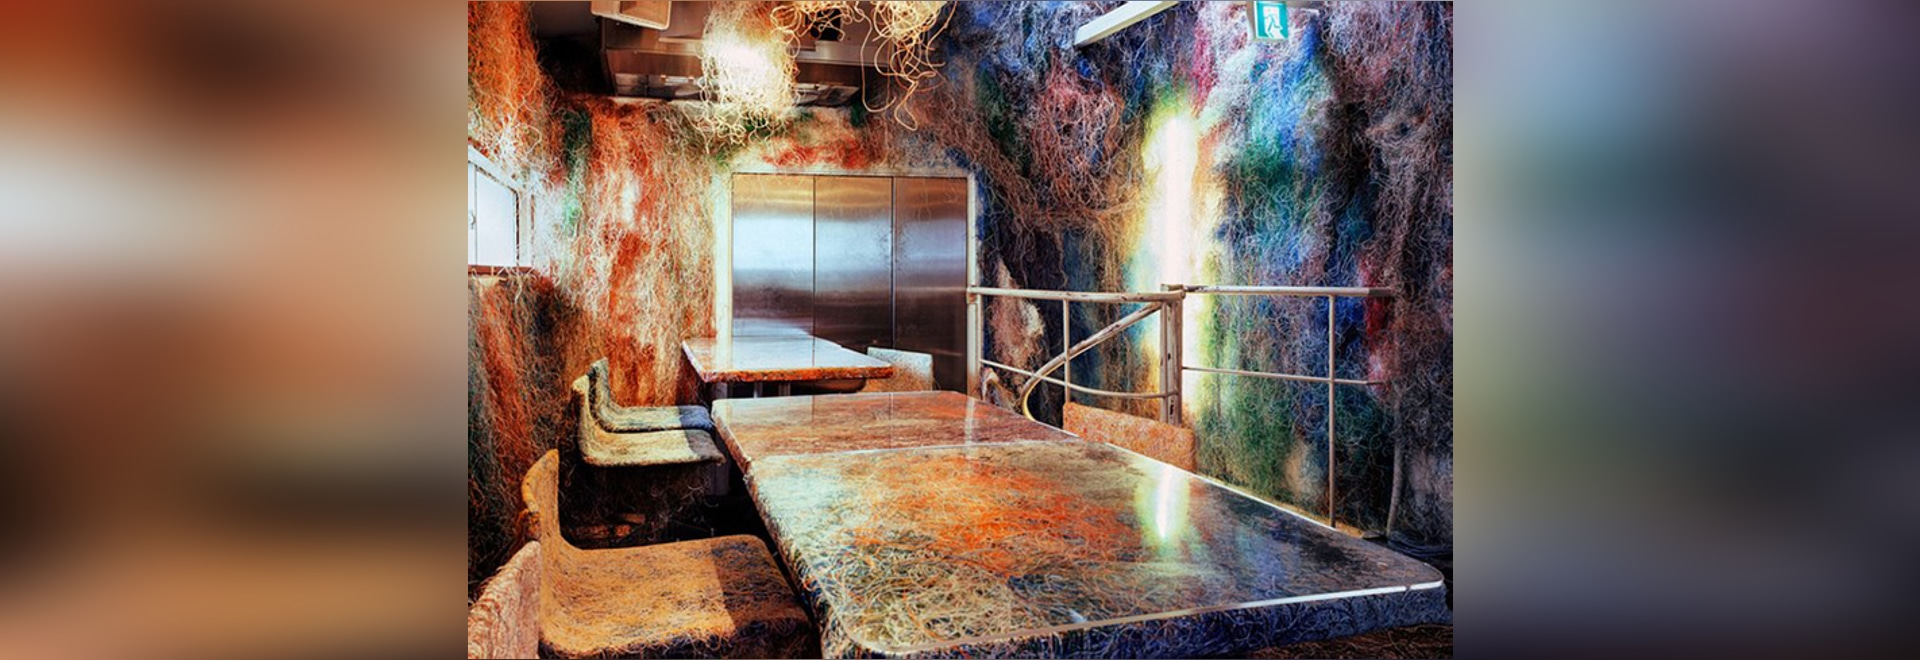 Kengo Kuma's striking renovation of a Tokyo eatery is made from thousands of re-used multicolored cables